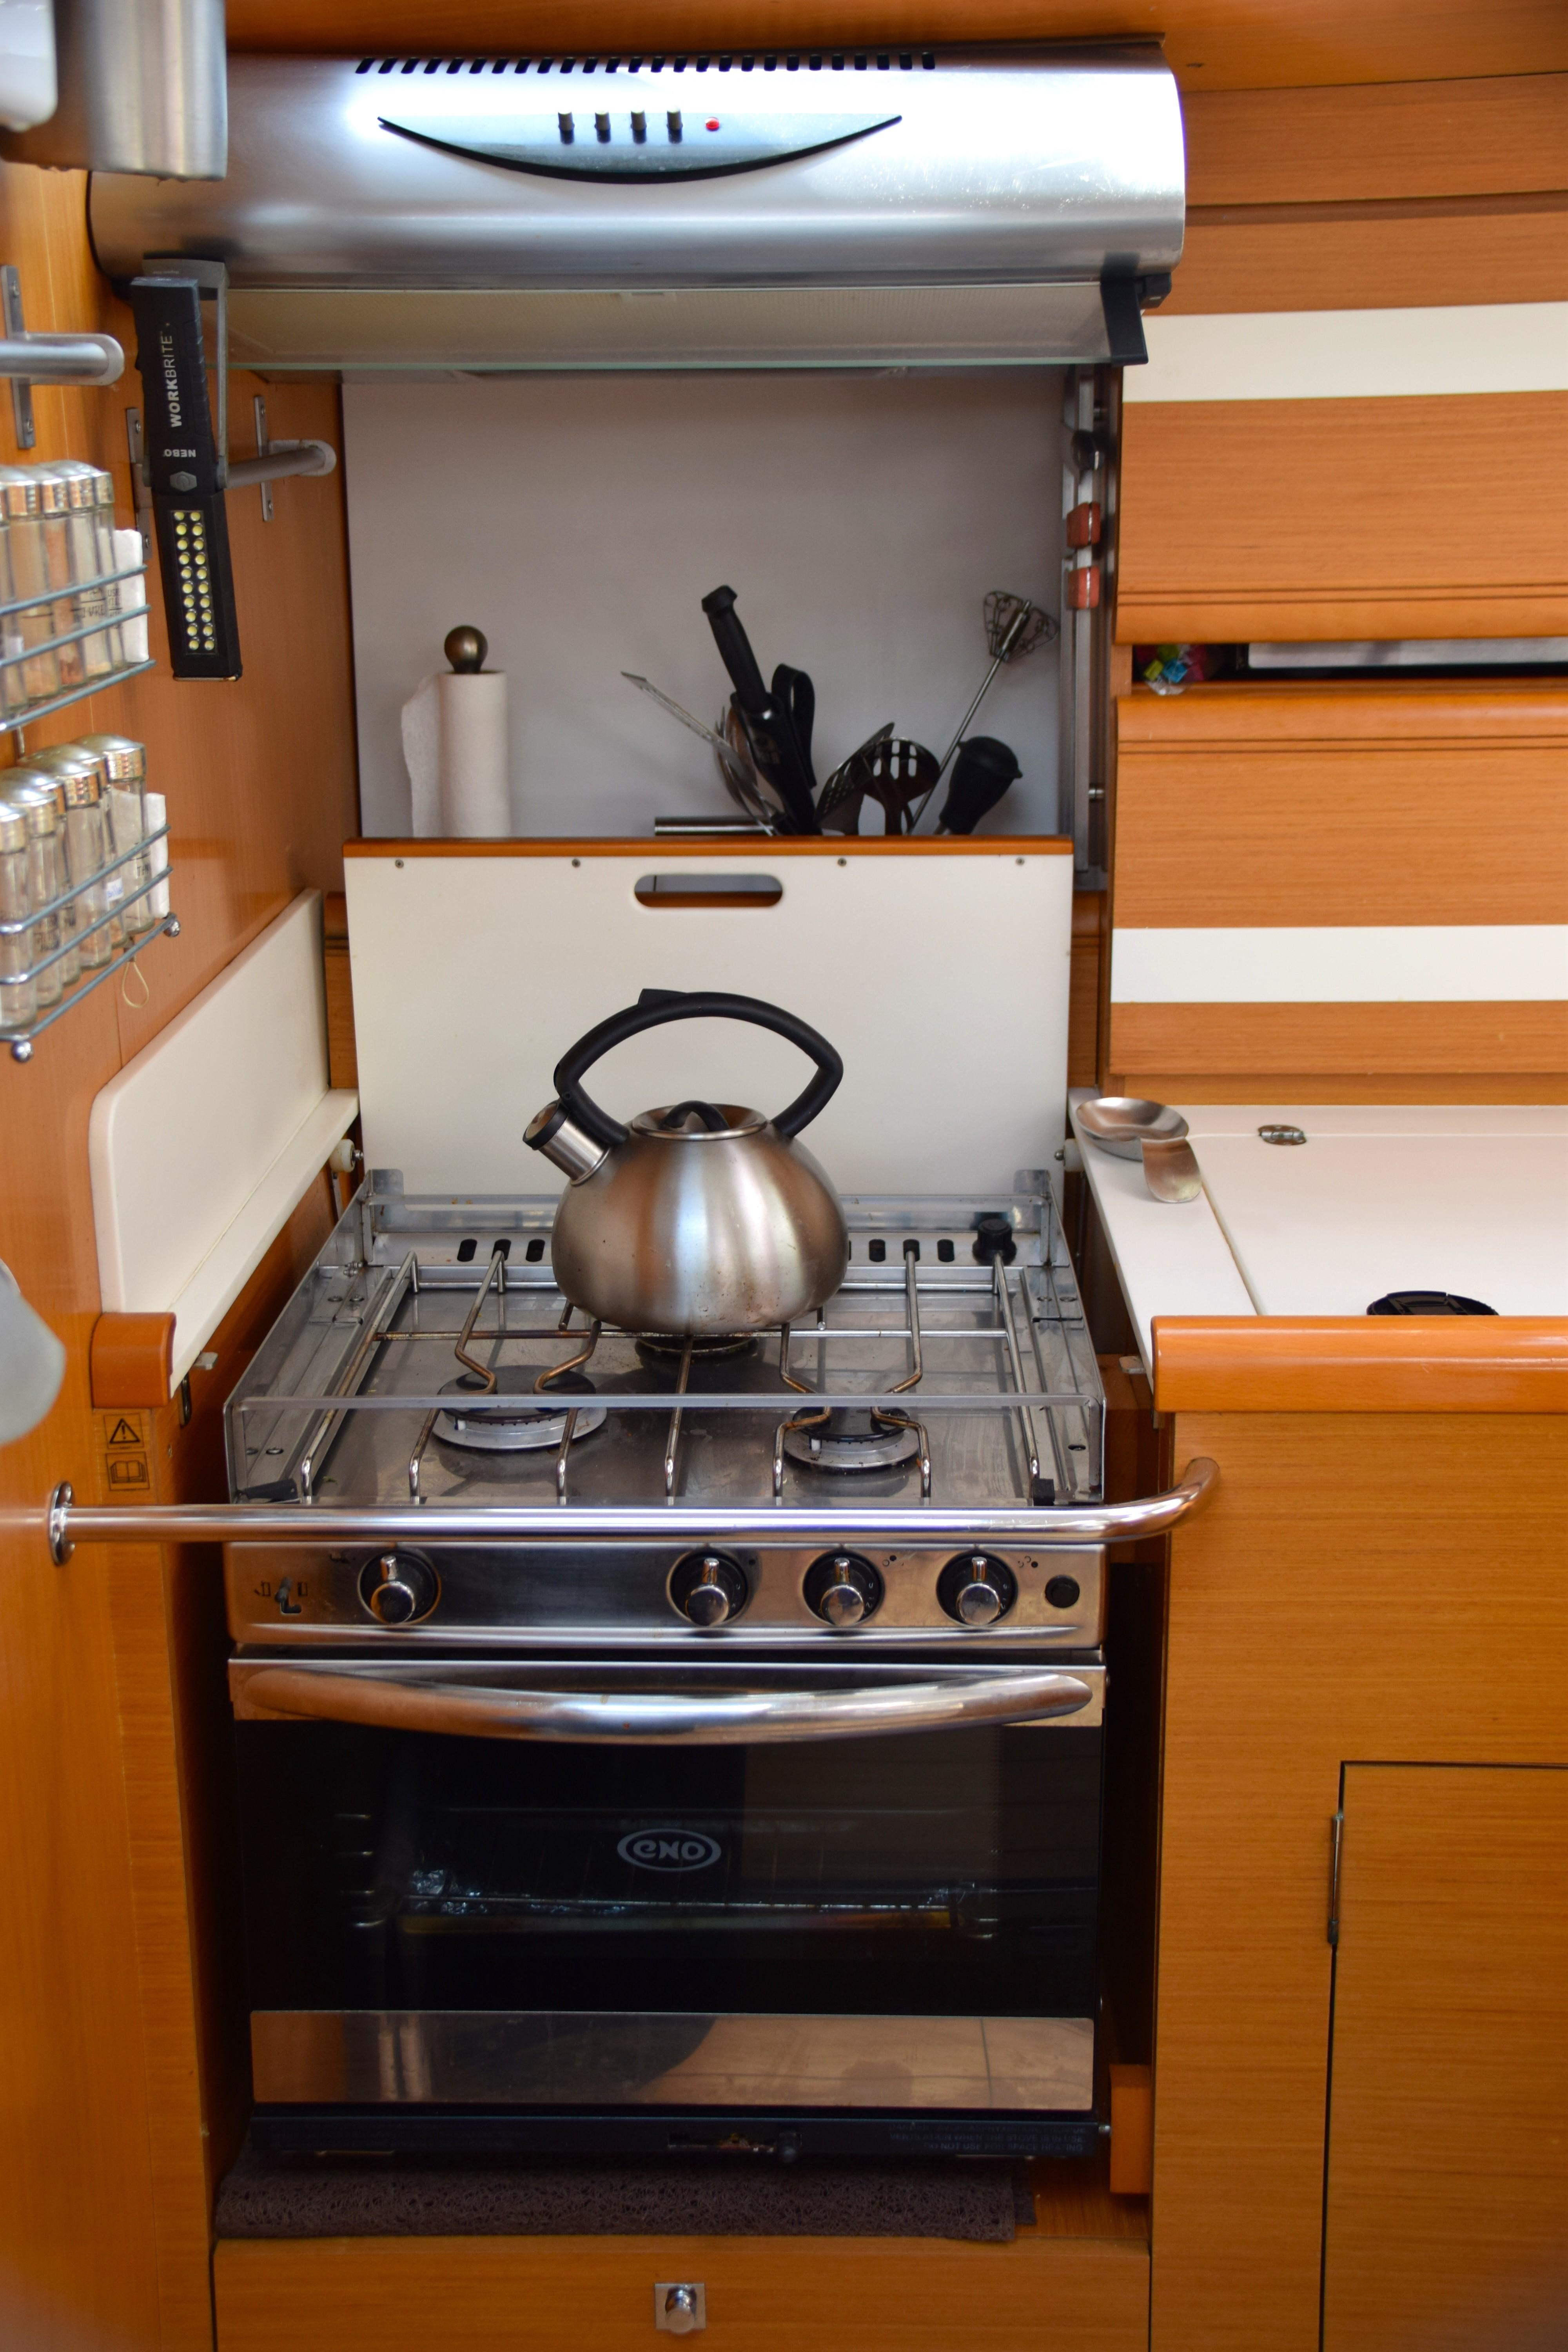 Oven/cooktop with galley hood